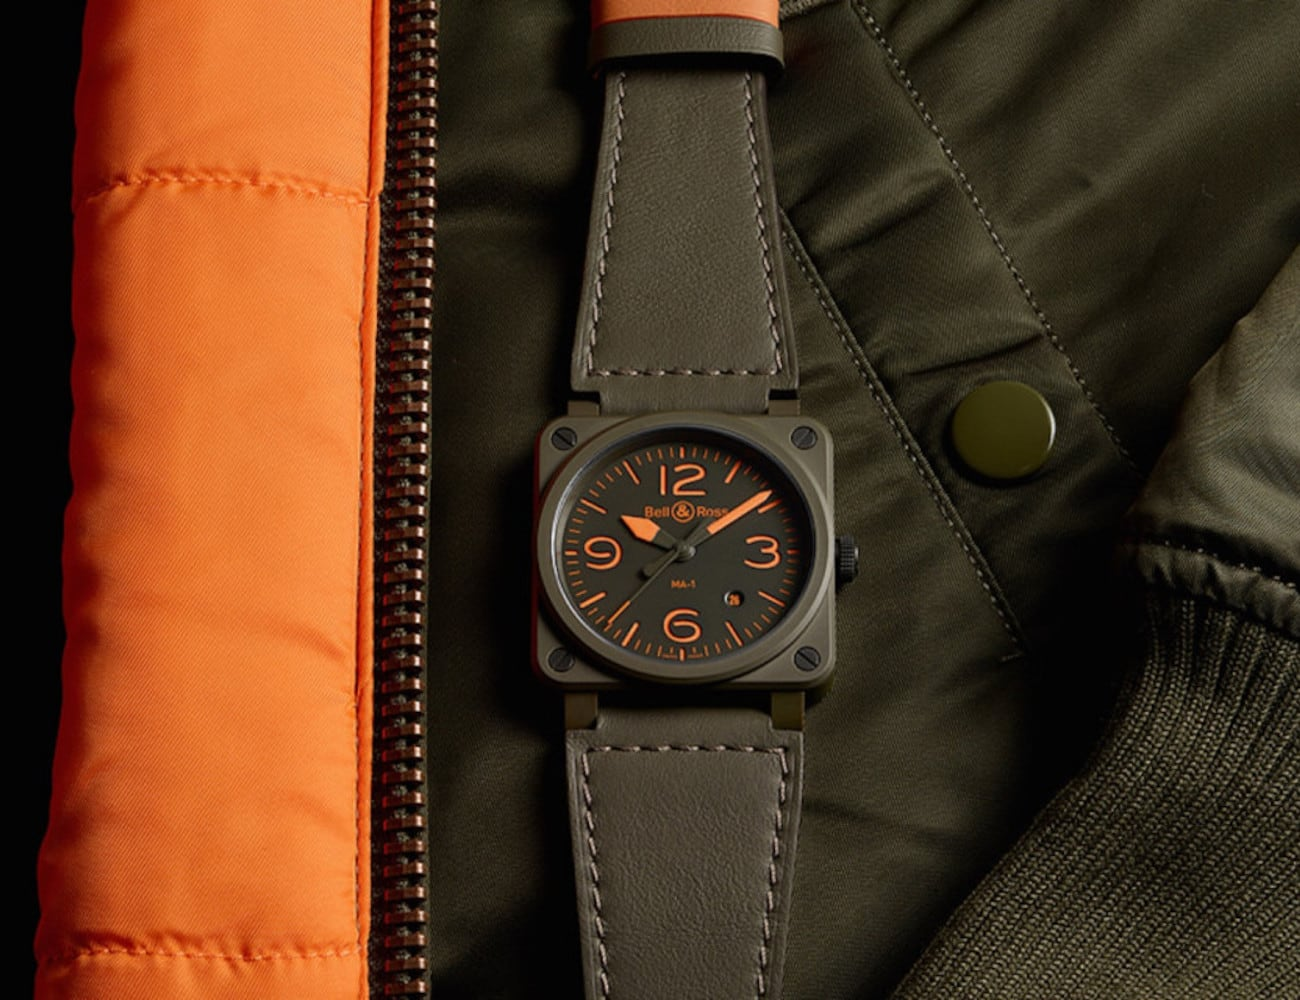 Bell & Ross BR03-92 MA-1 Streamlined Pilot Watch offers iconic US Air Force style